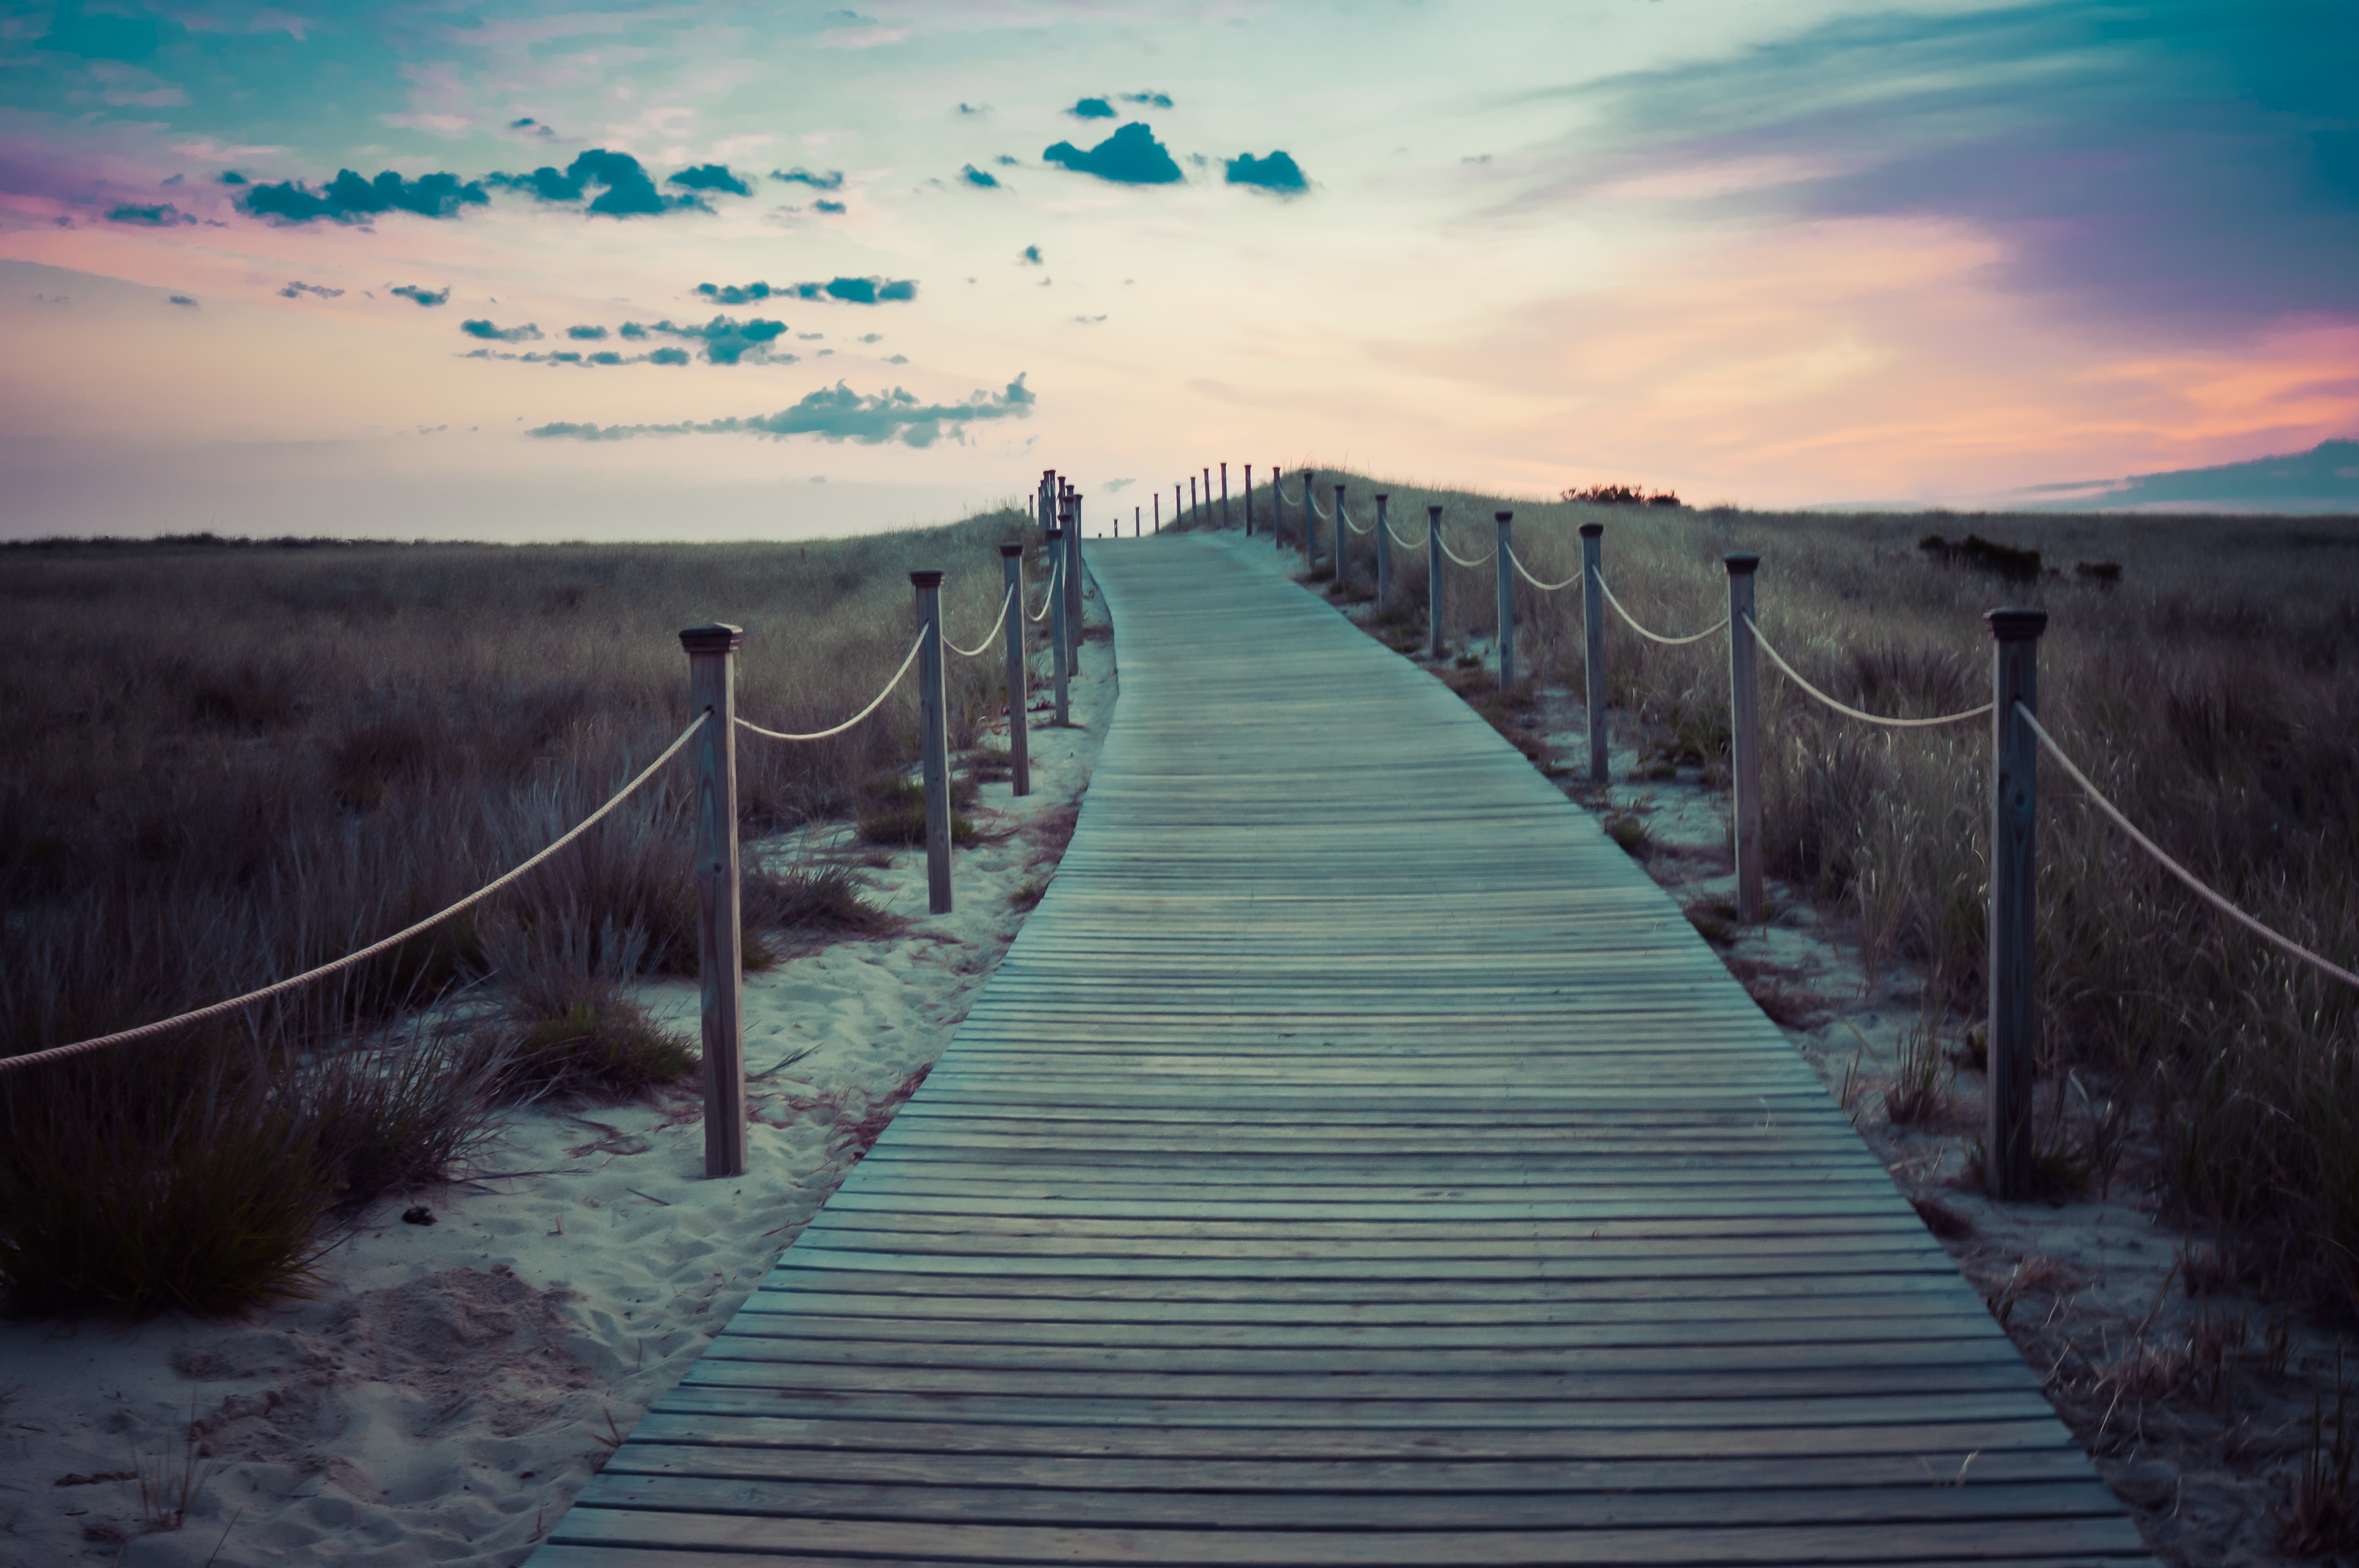 Wooden boardwalk with rope fence through the grass field after the sunset